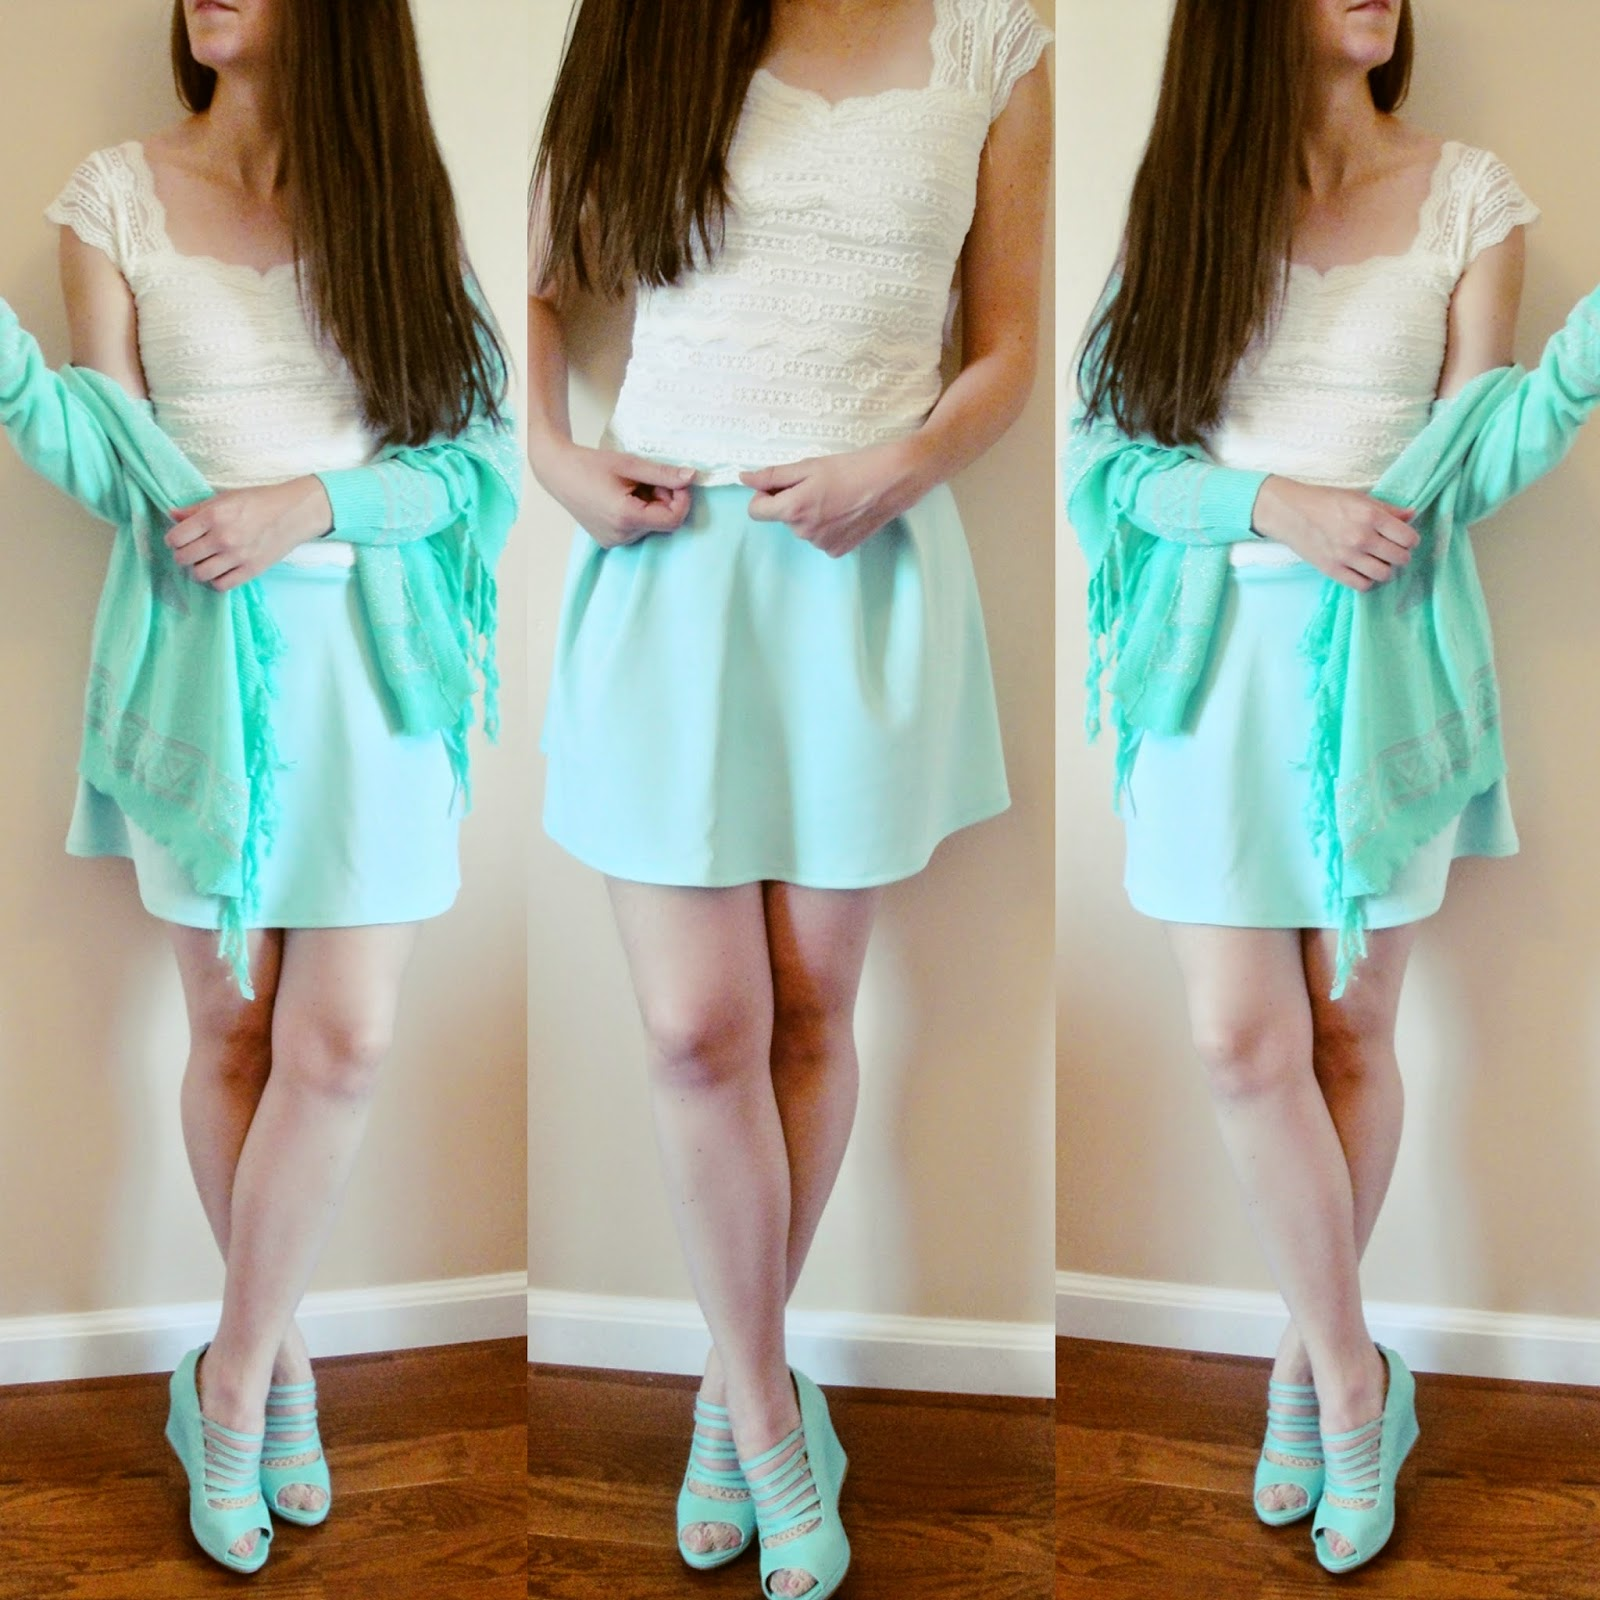 instagram outfits, instgram ootd, mint on mint, lace with mint skater skirt, mint kimono, mint sandal wedges, pretty outfit, ootd, outfit of the day, mint outfit to wear in the summer, summer outfit with mint skater skirt, mint kimono, kimono outfit, fringe kimono,